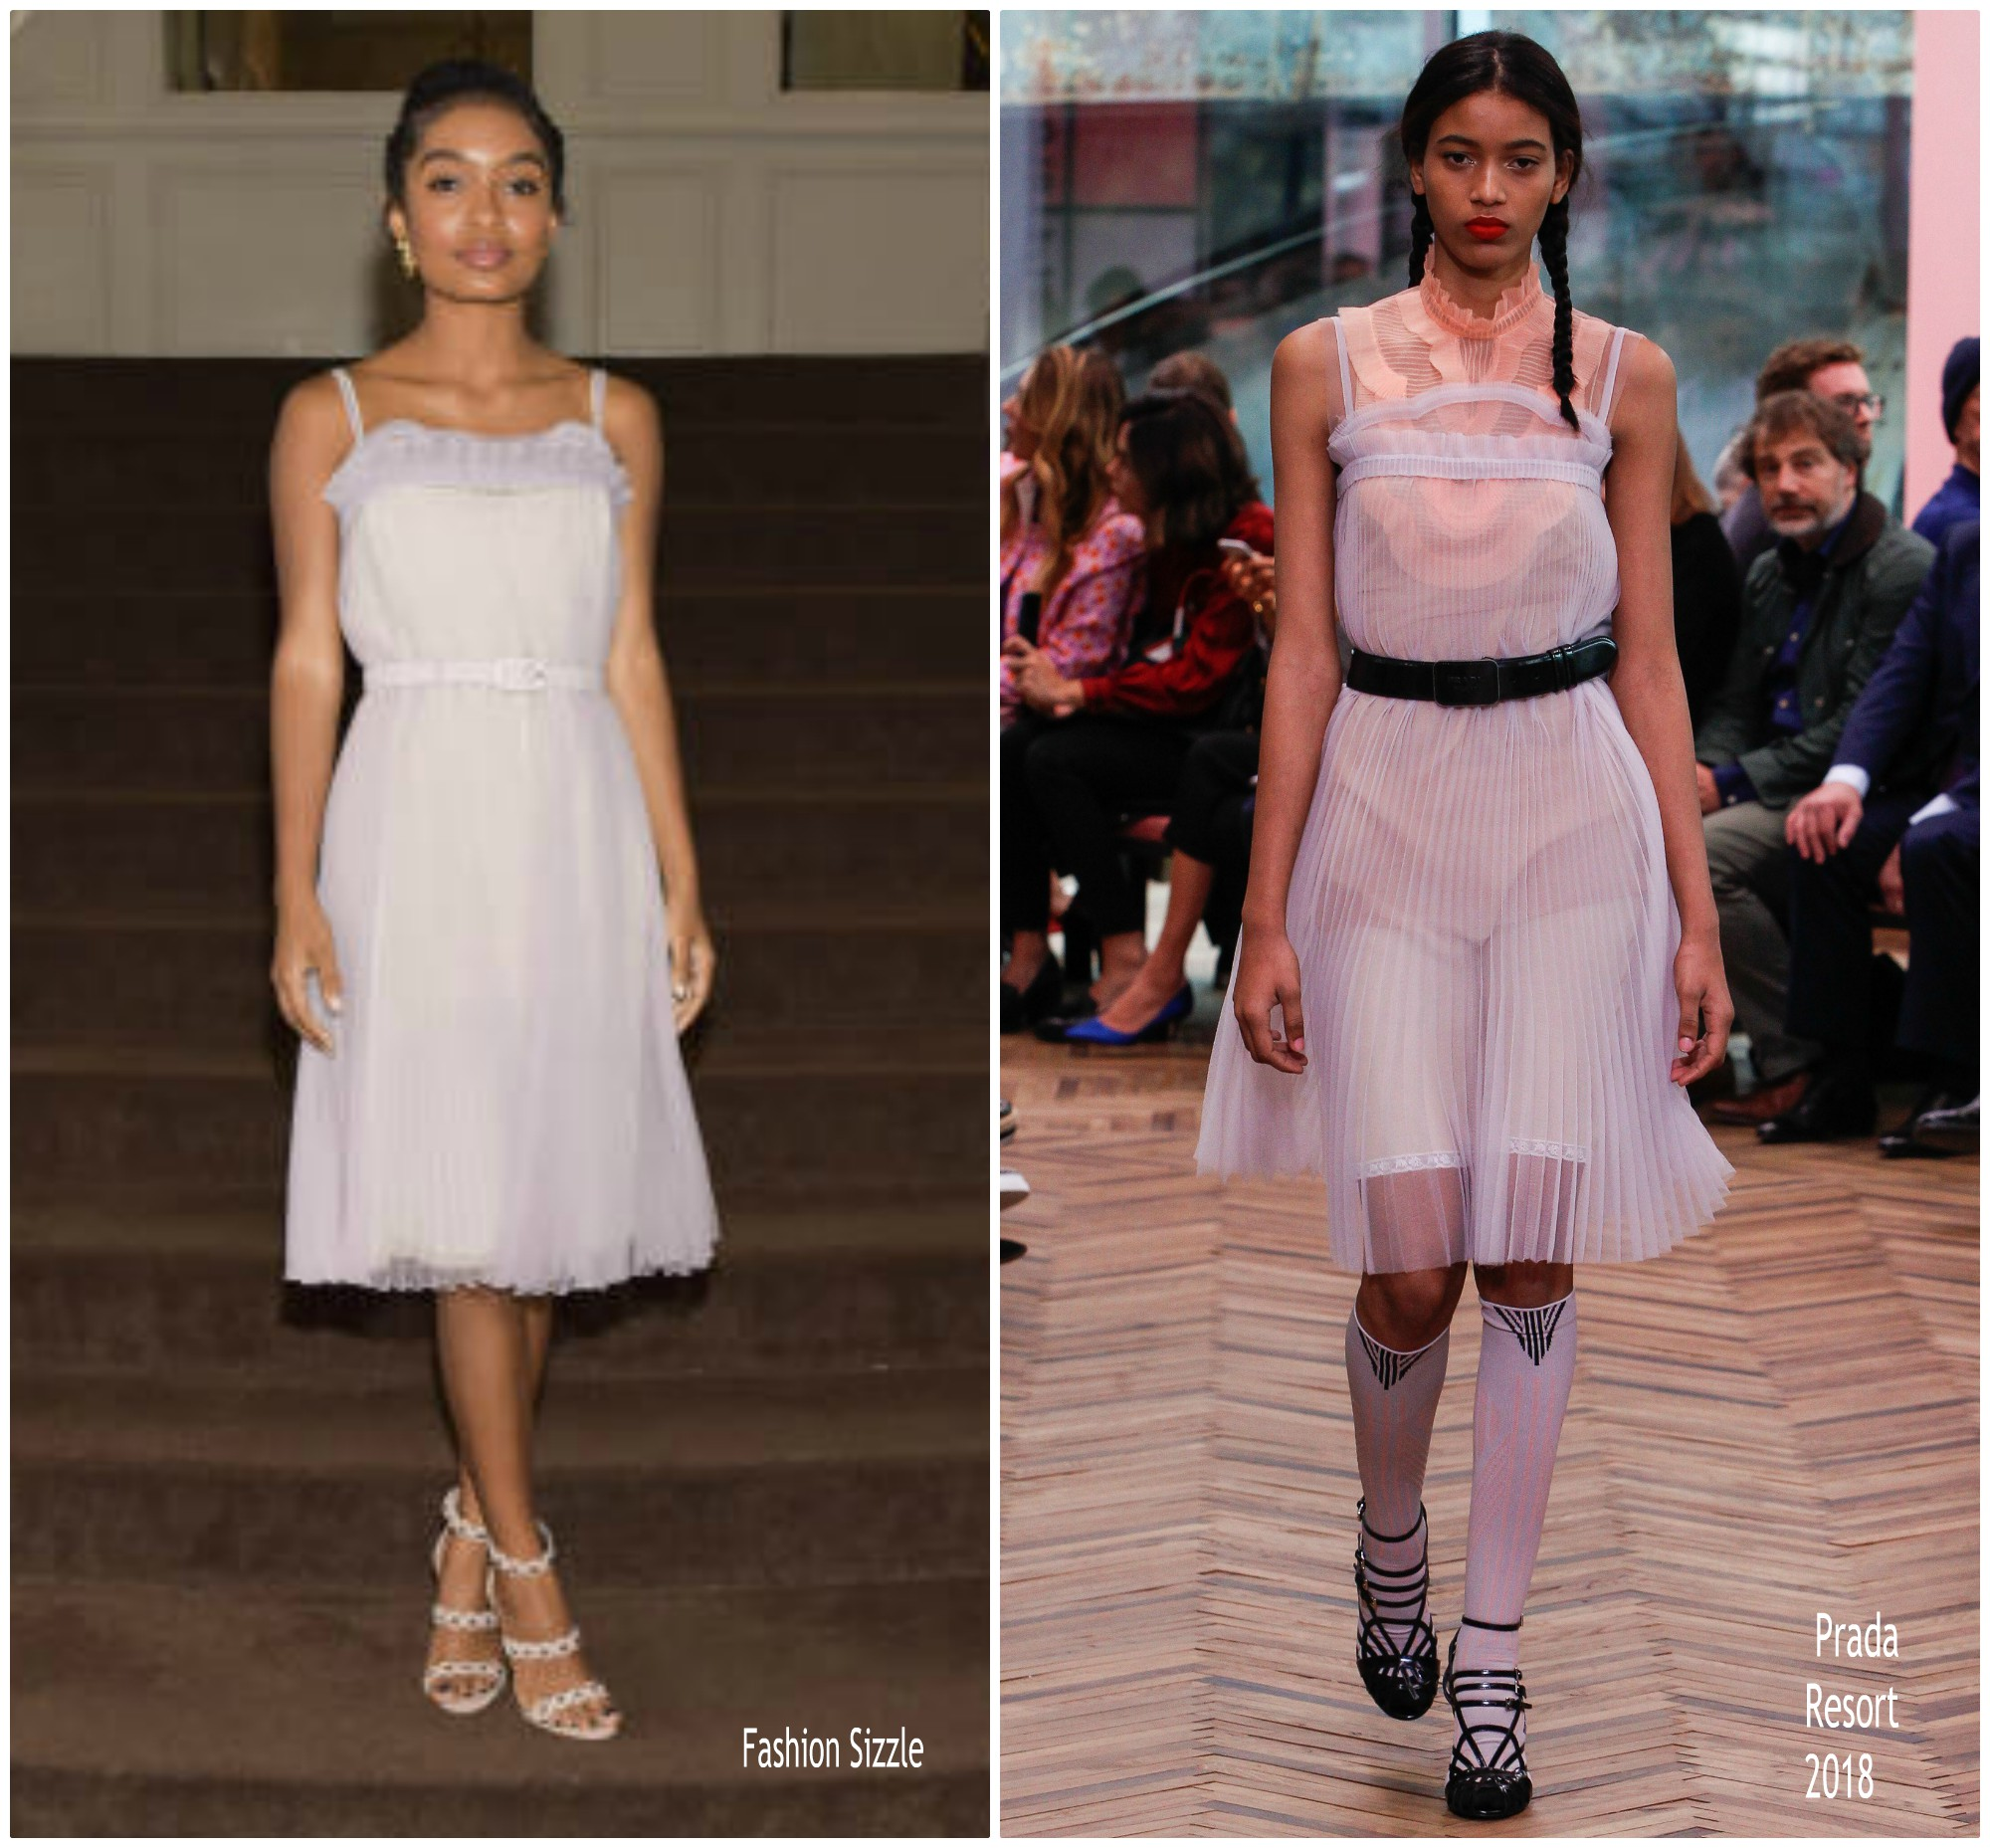 yara-shahidi-in-prada-accessories-for-success-scholarship-luncheon